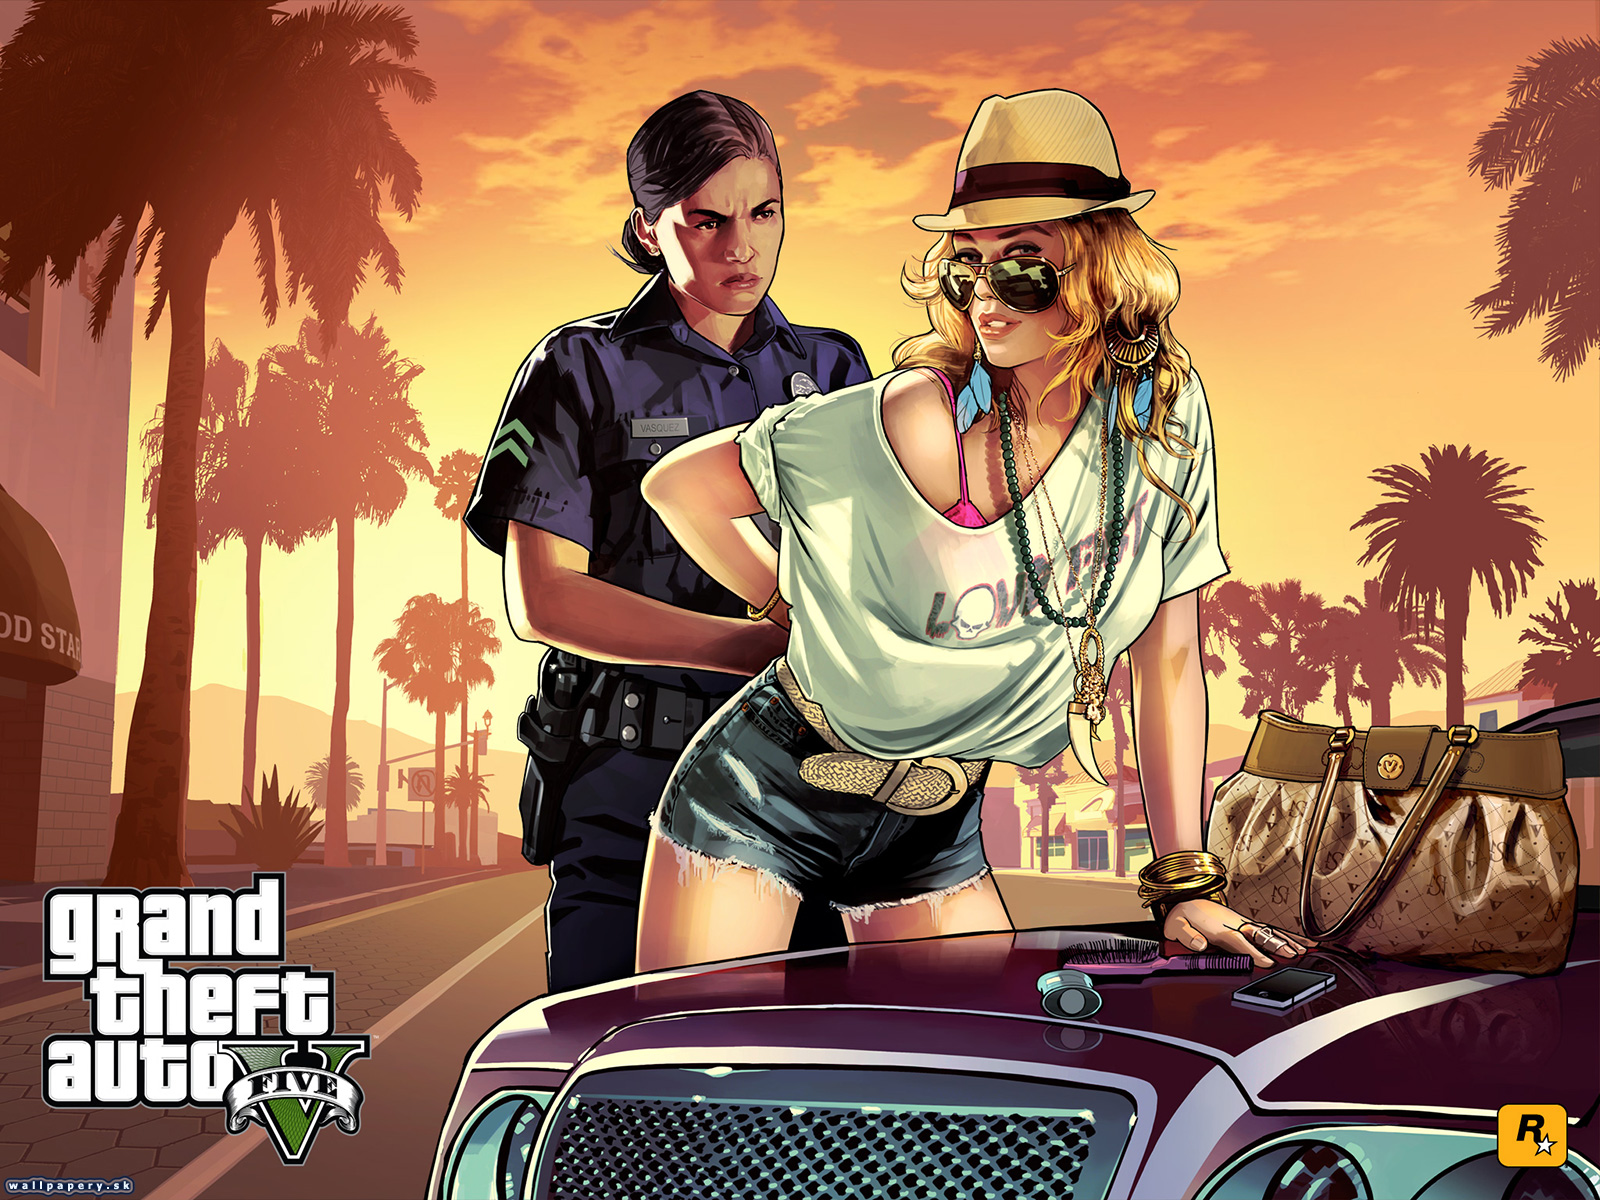 Grand Theft Auto V - wallpaper 8